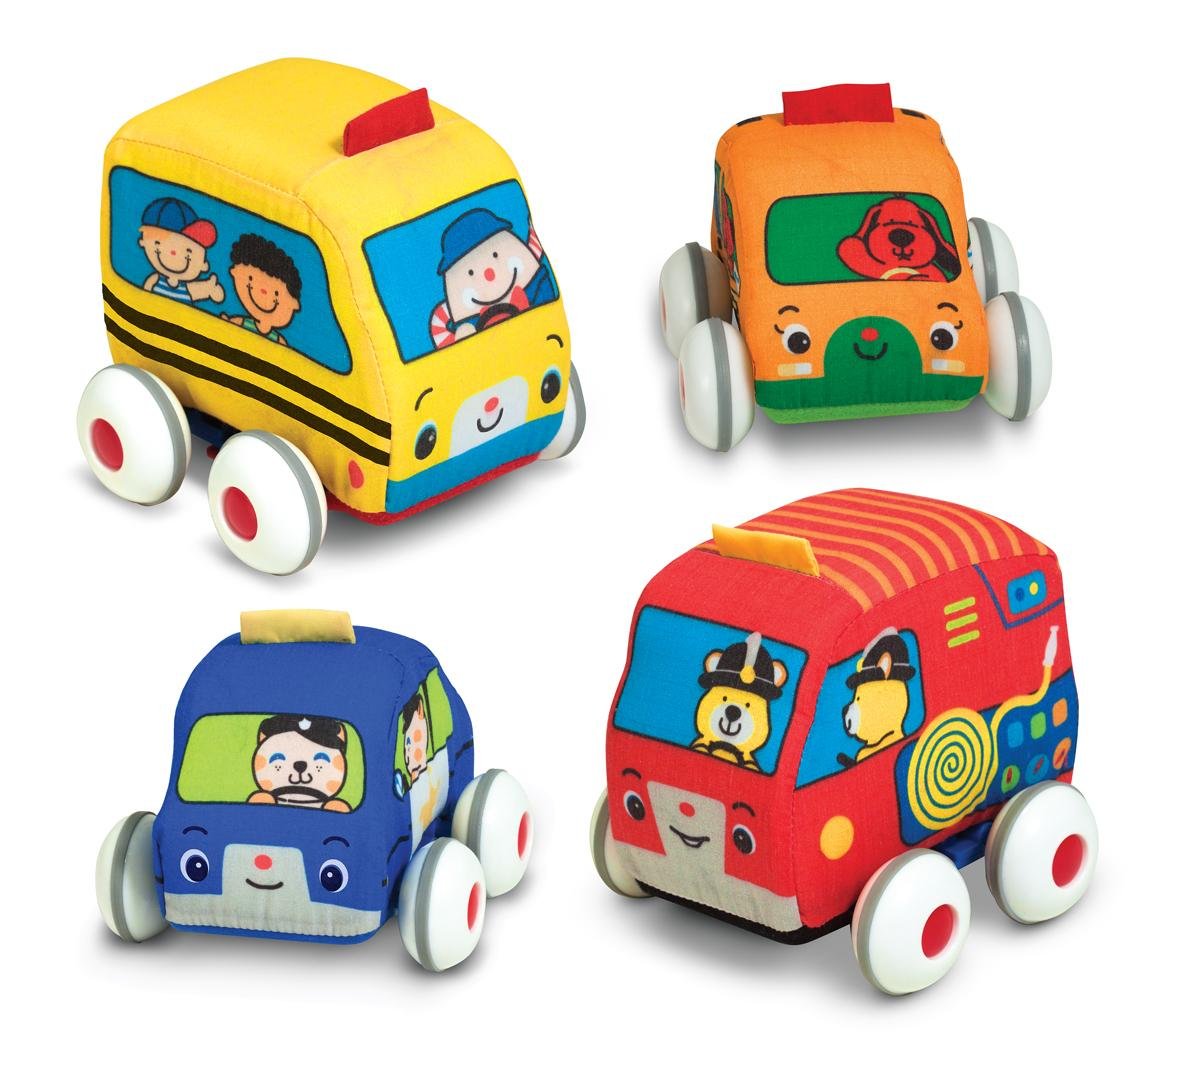 Amazon.com: Melissa & Doug K's Kids Pull-Back Vehicle Set